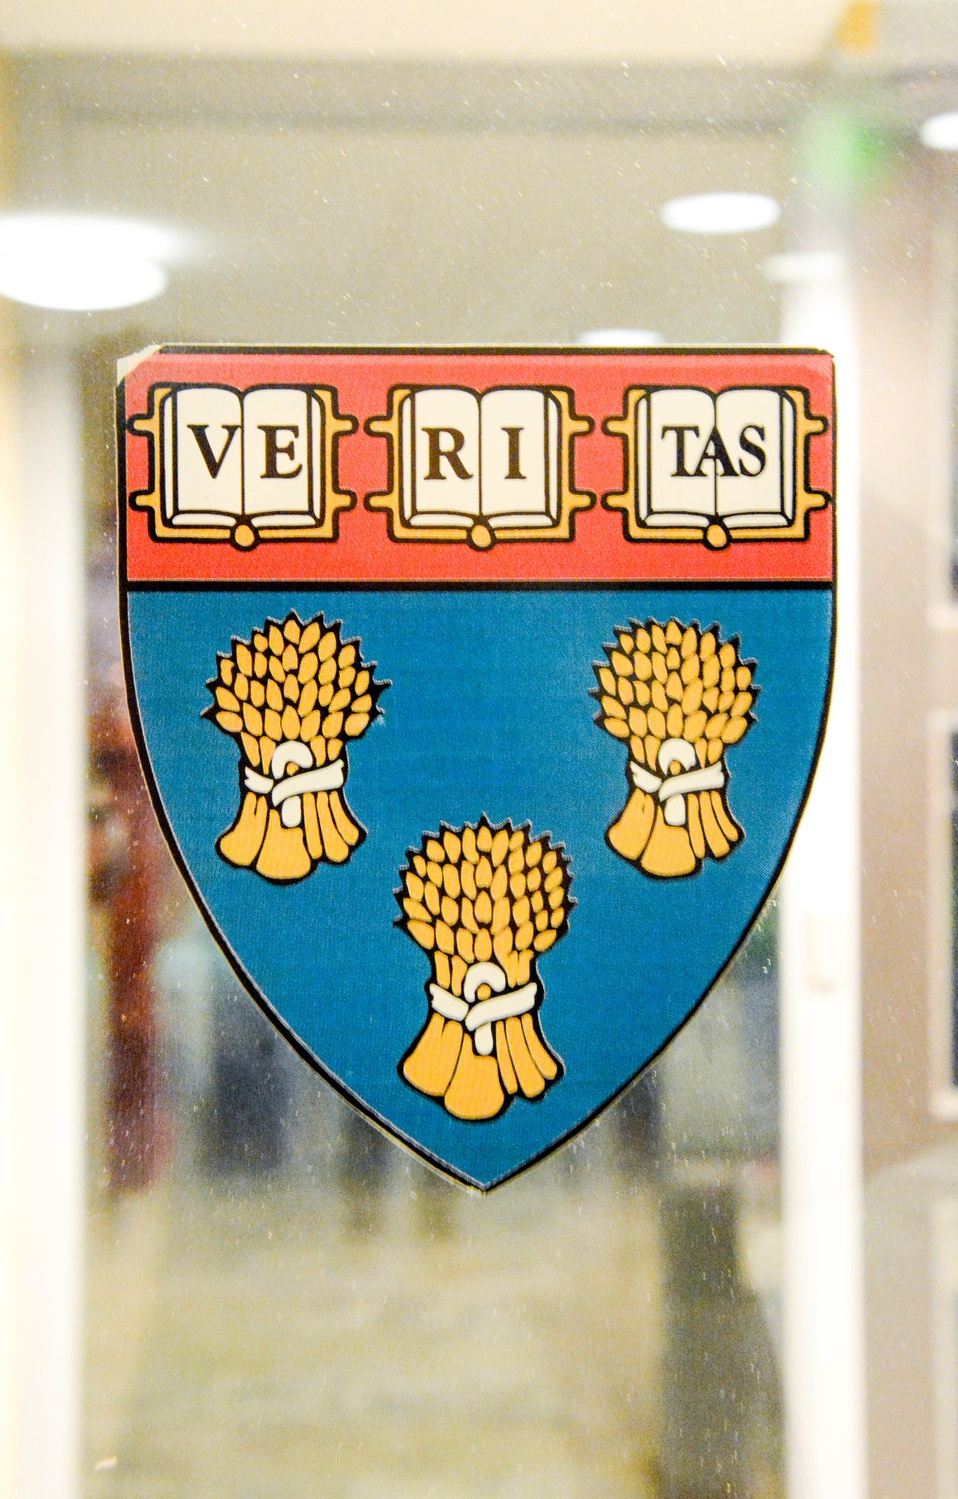 Harvard Law School has yet to decide on a seal to replace the controversial crest of the slave-owning Royall family.